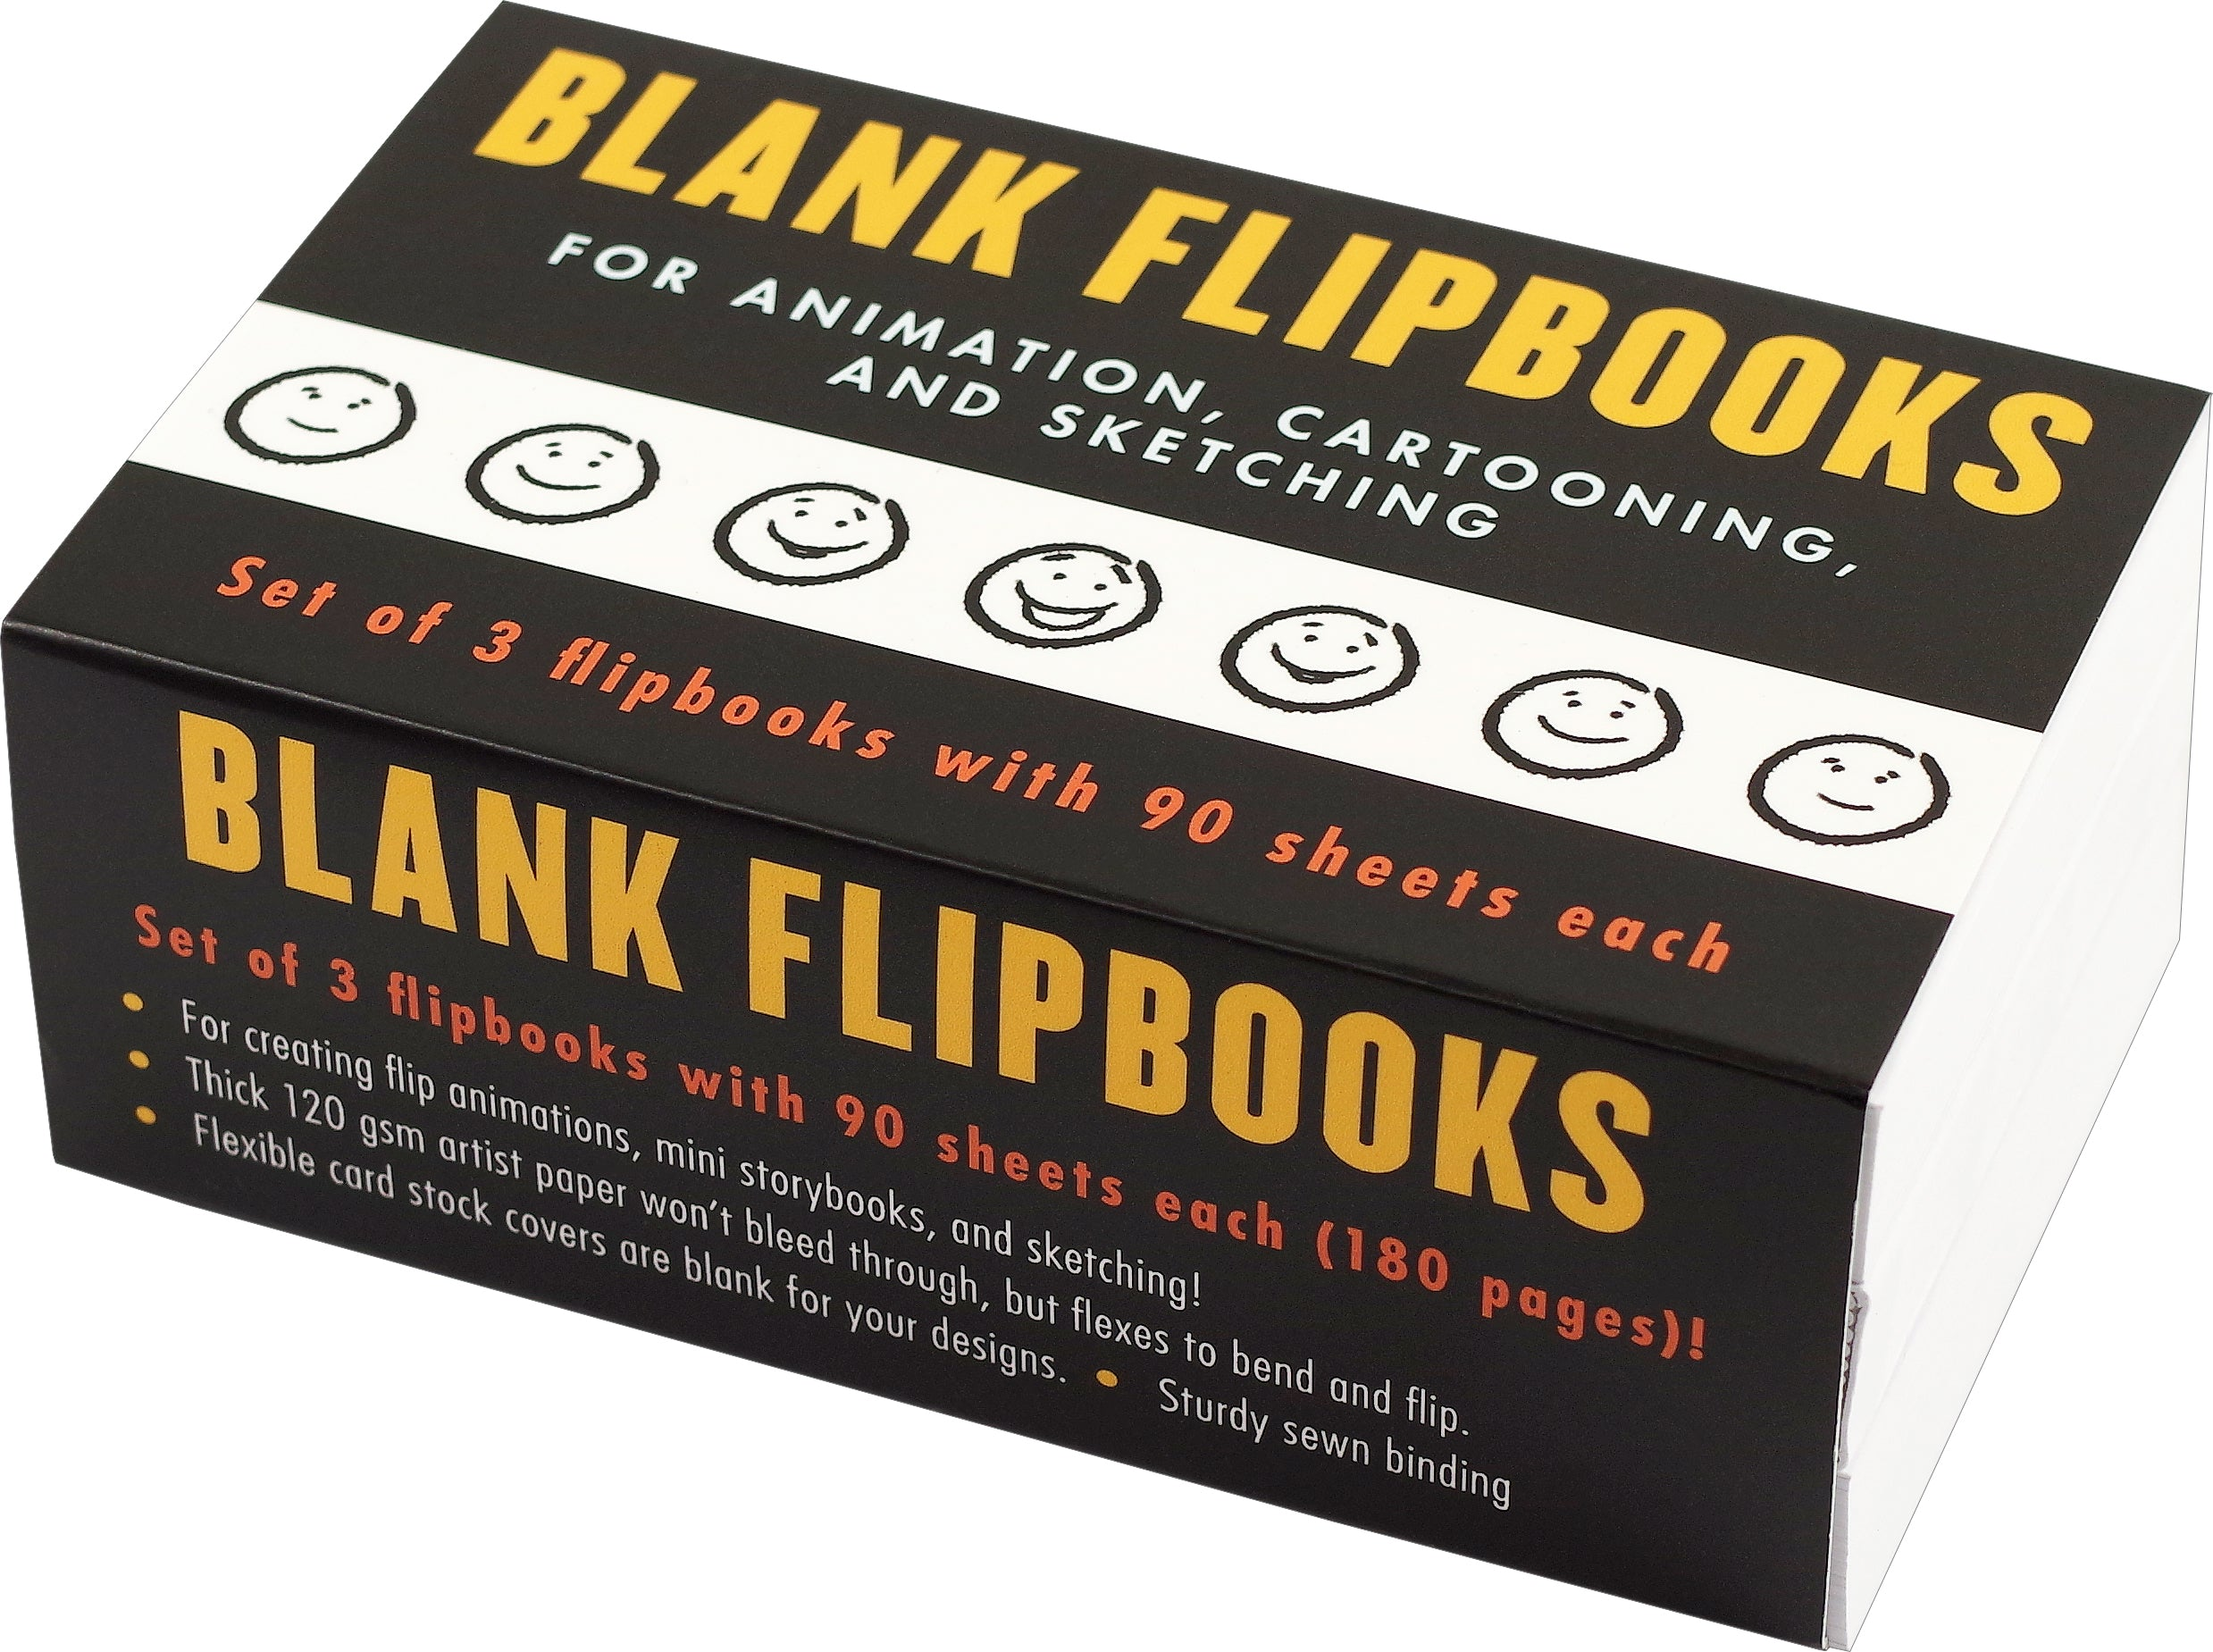 Blank Flipbooks - Animation, Cartooning, and Sketching